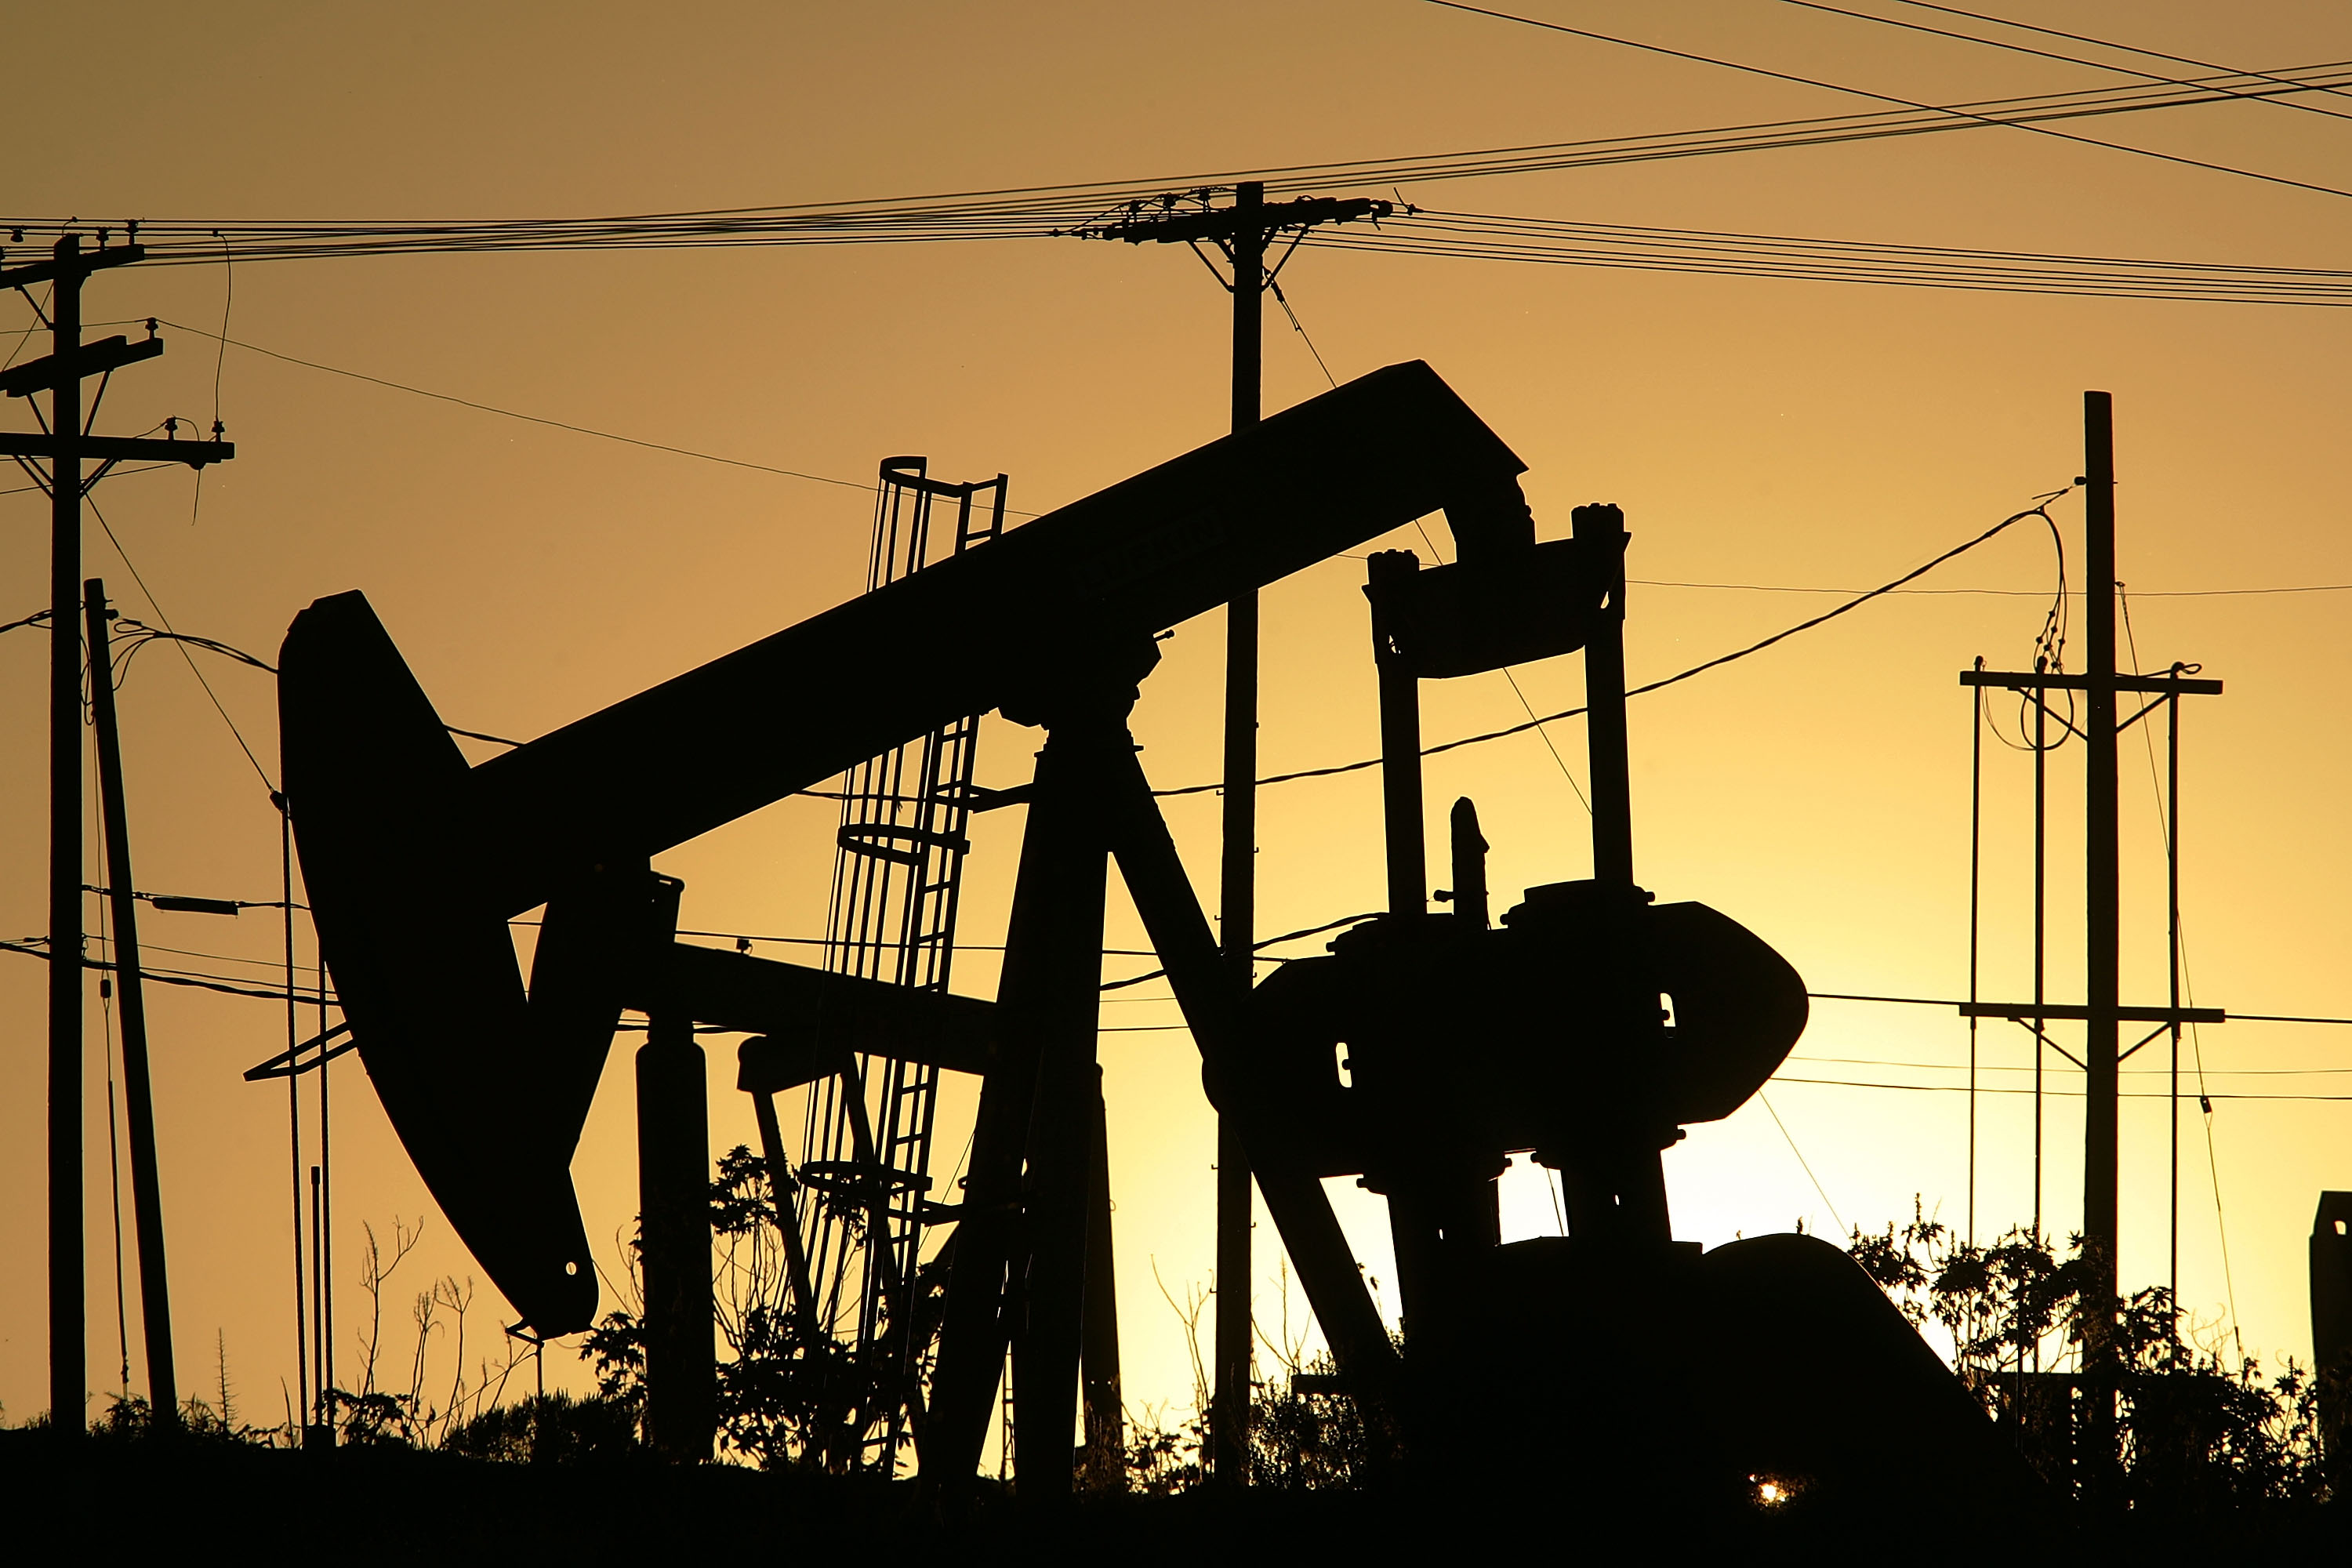 Oil rigs extract petroleum on April 25, 2008 in the Los Angeles area community of Culver City, California.